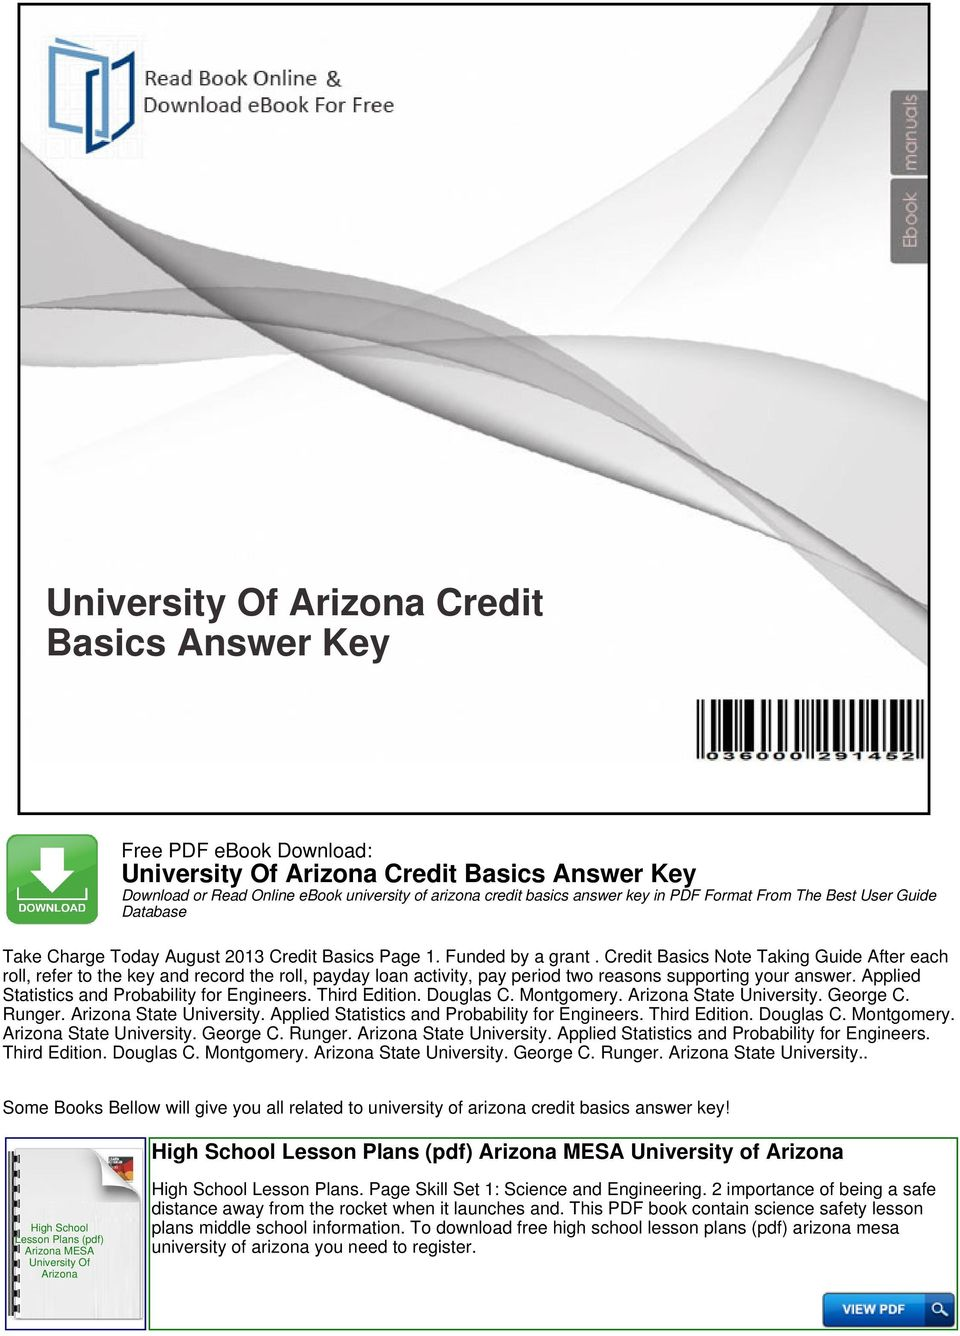 University of arizona credit basics answer key pdf transcription fandeluxe Images